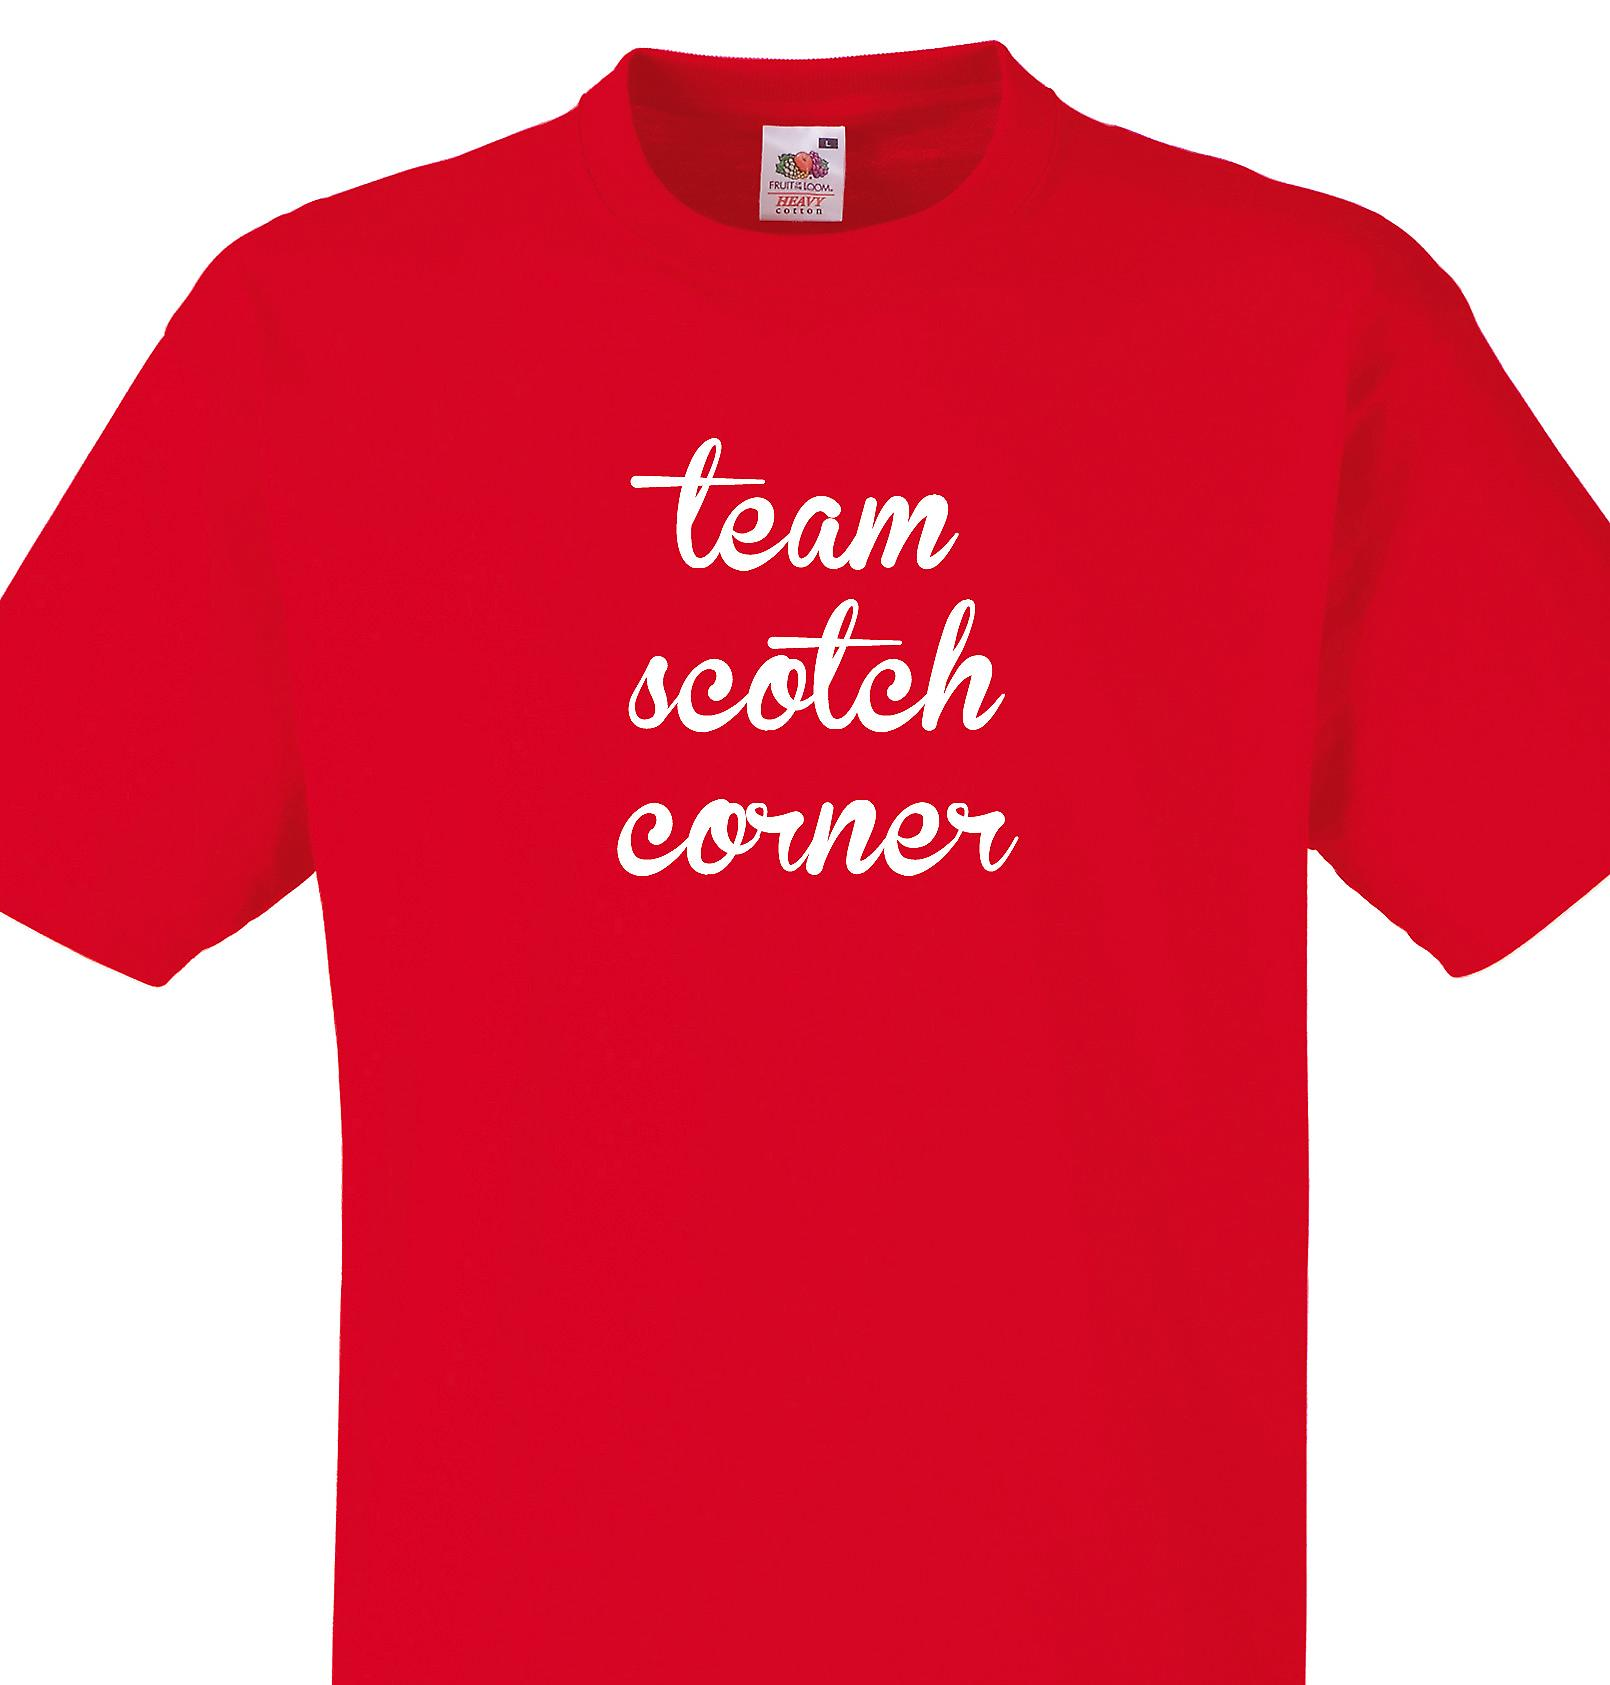 Team Scotch corner Red T shirt